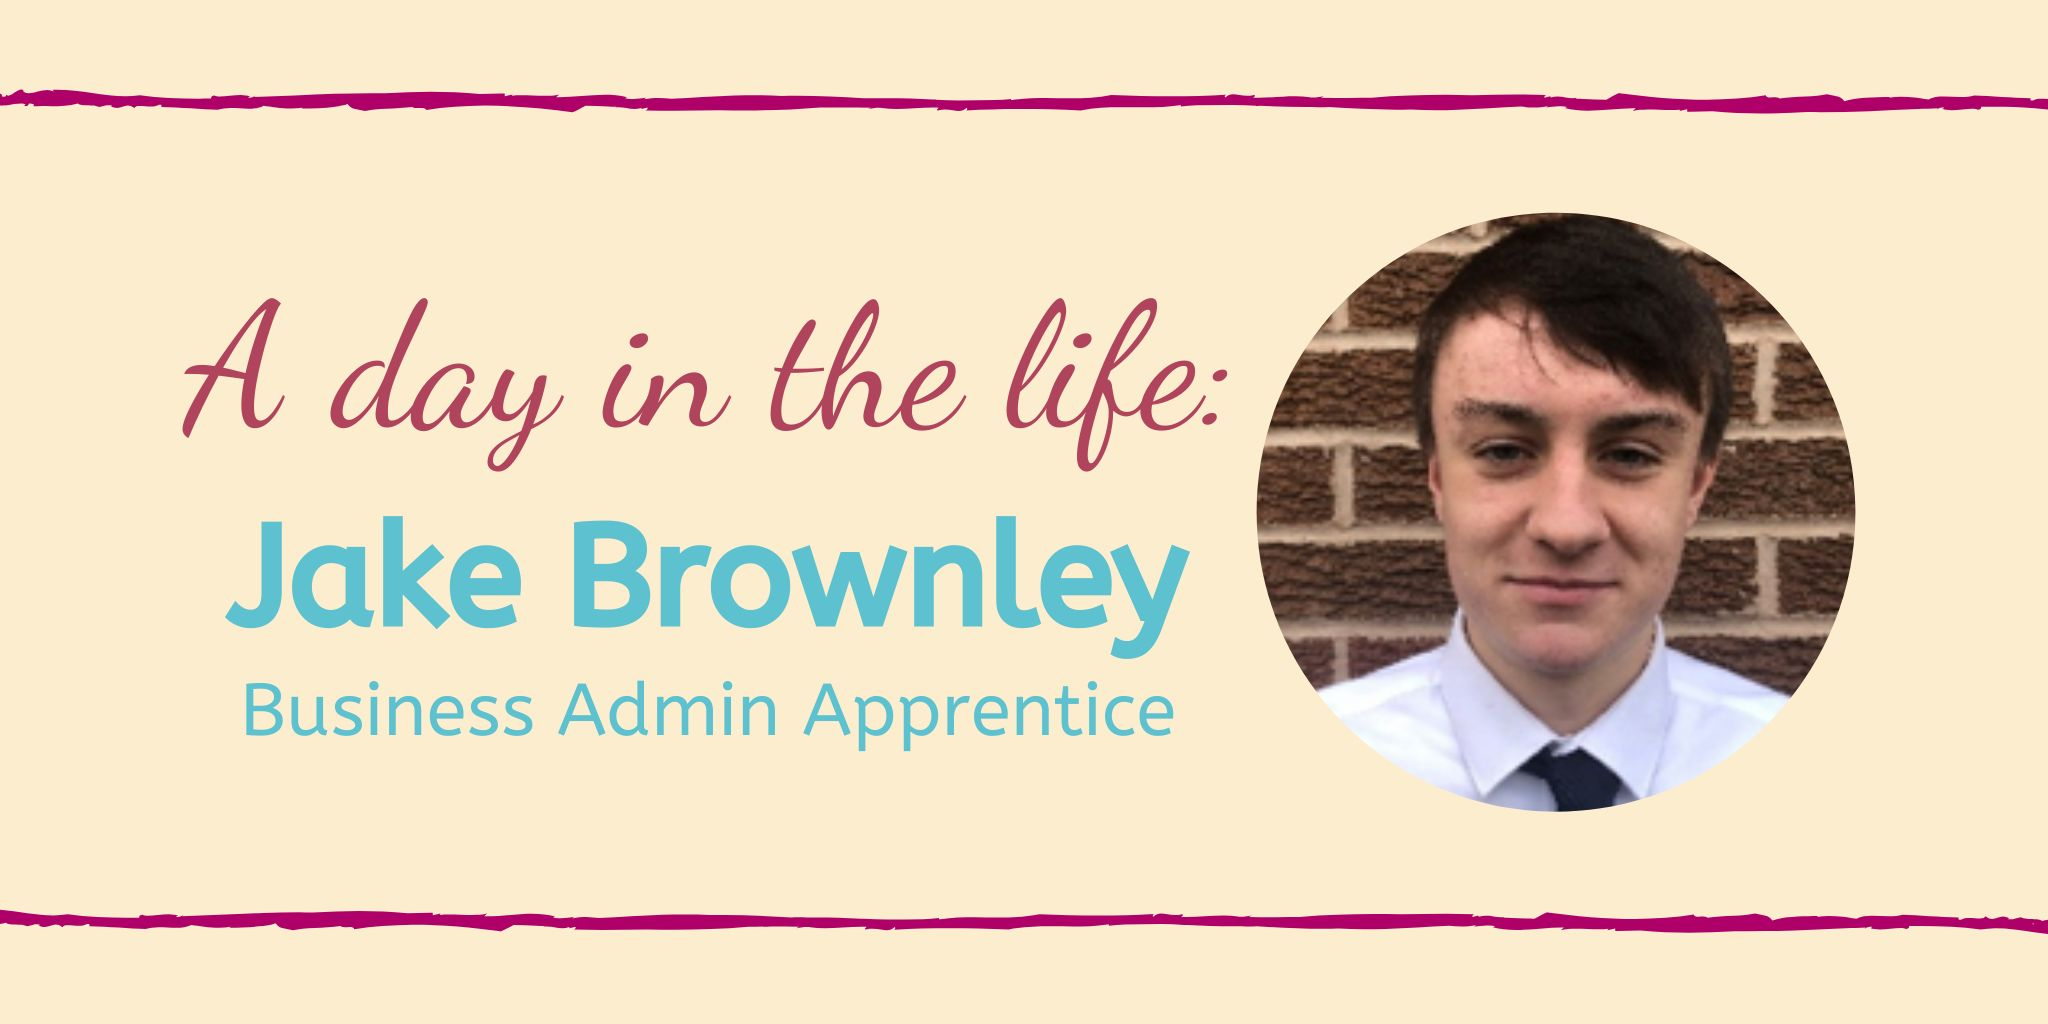 A day in the life: Jake Brownley